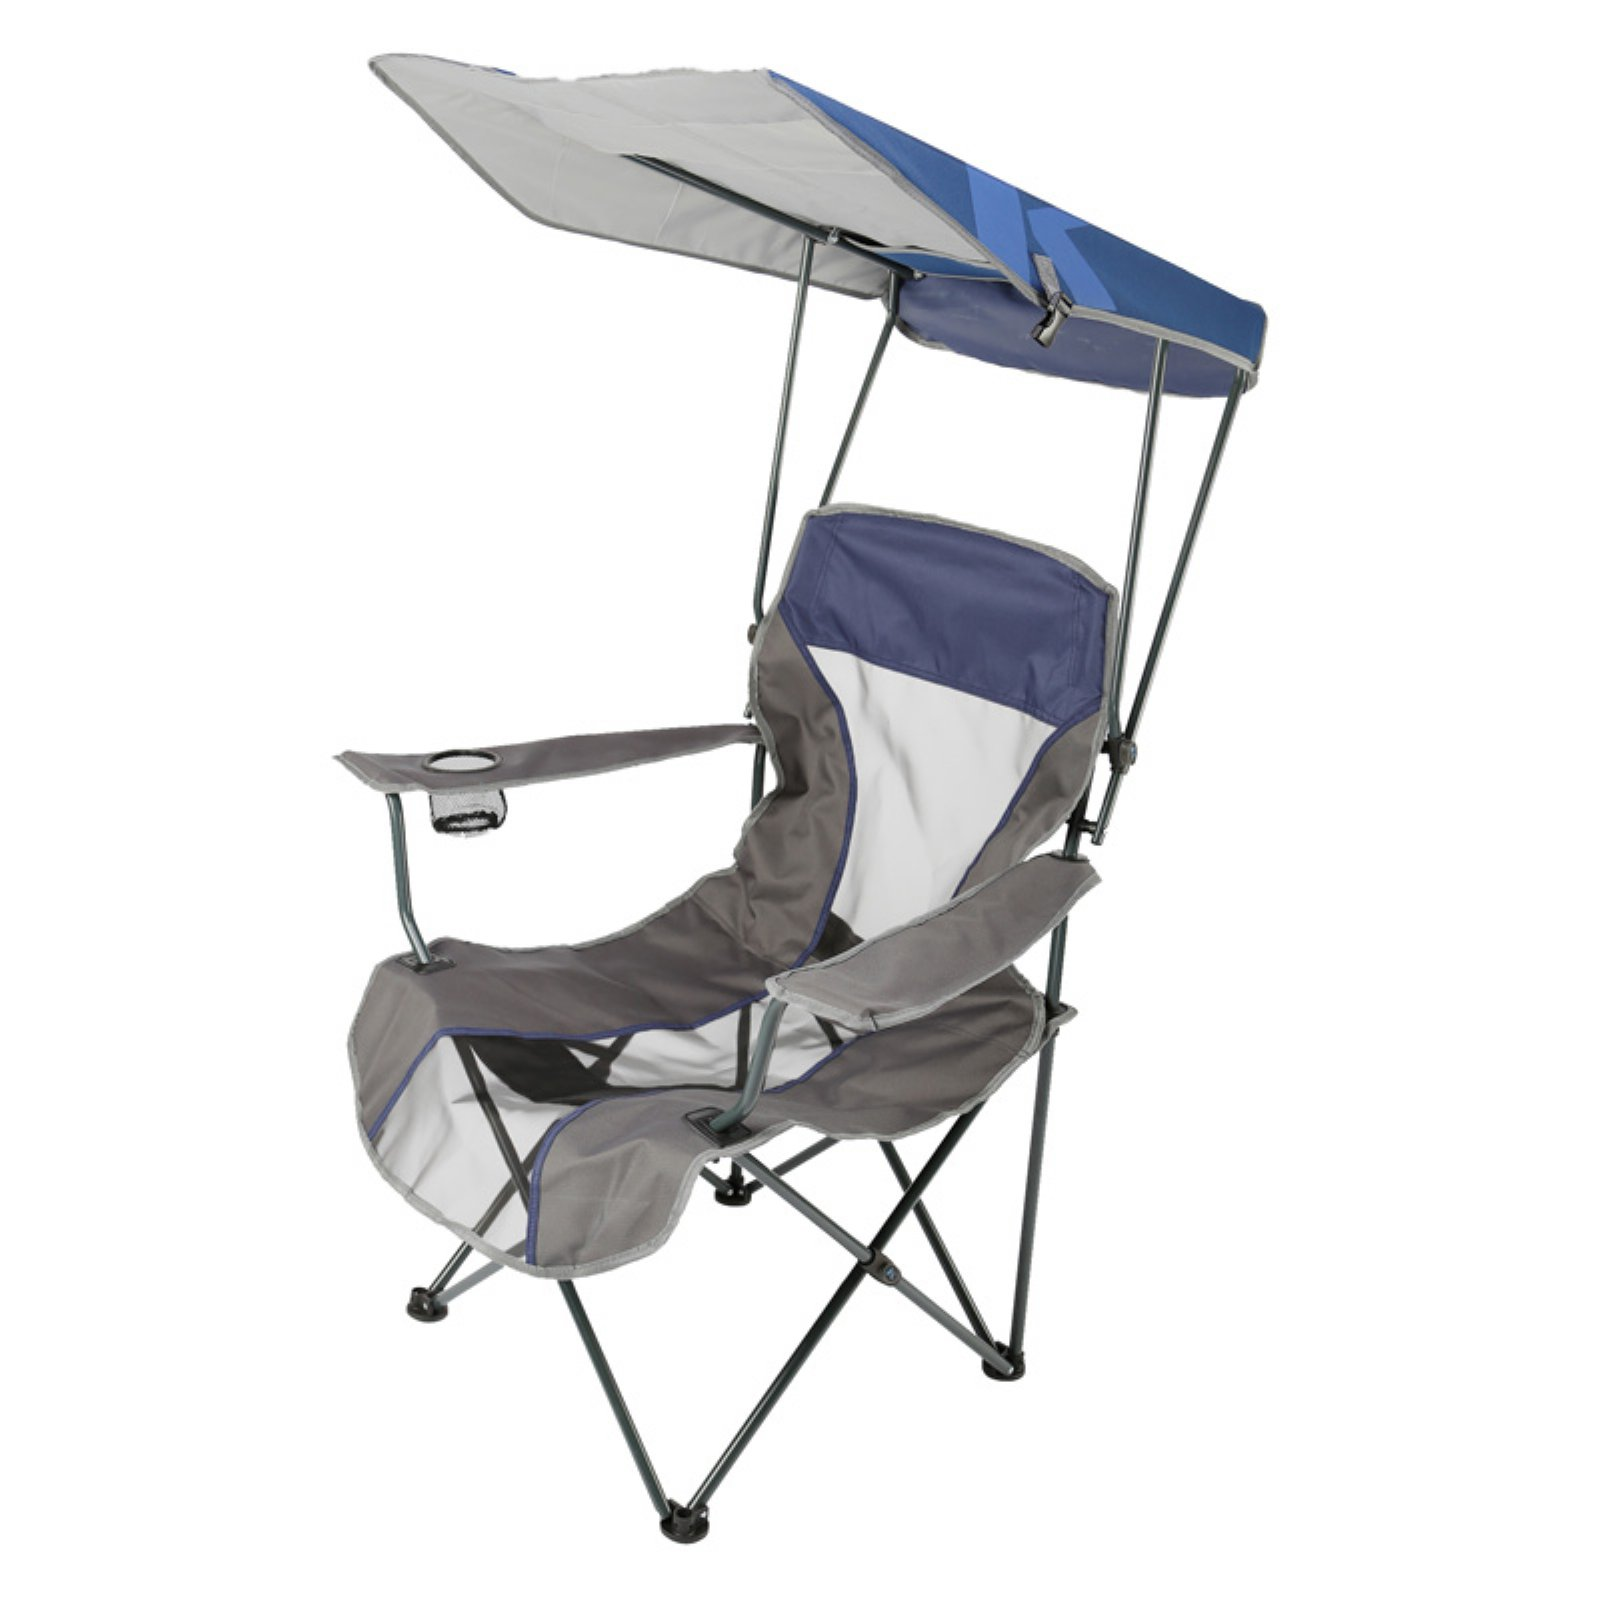 outdoor swim ways premium single lawn chair with canopy blue rh pinterest com